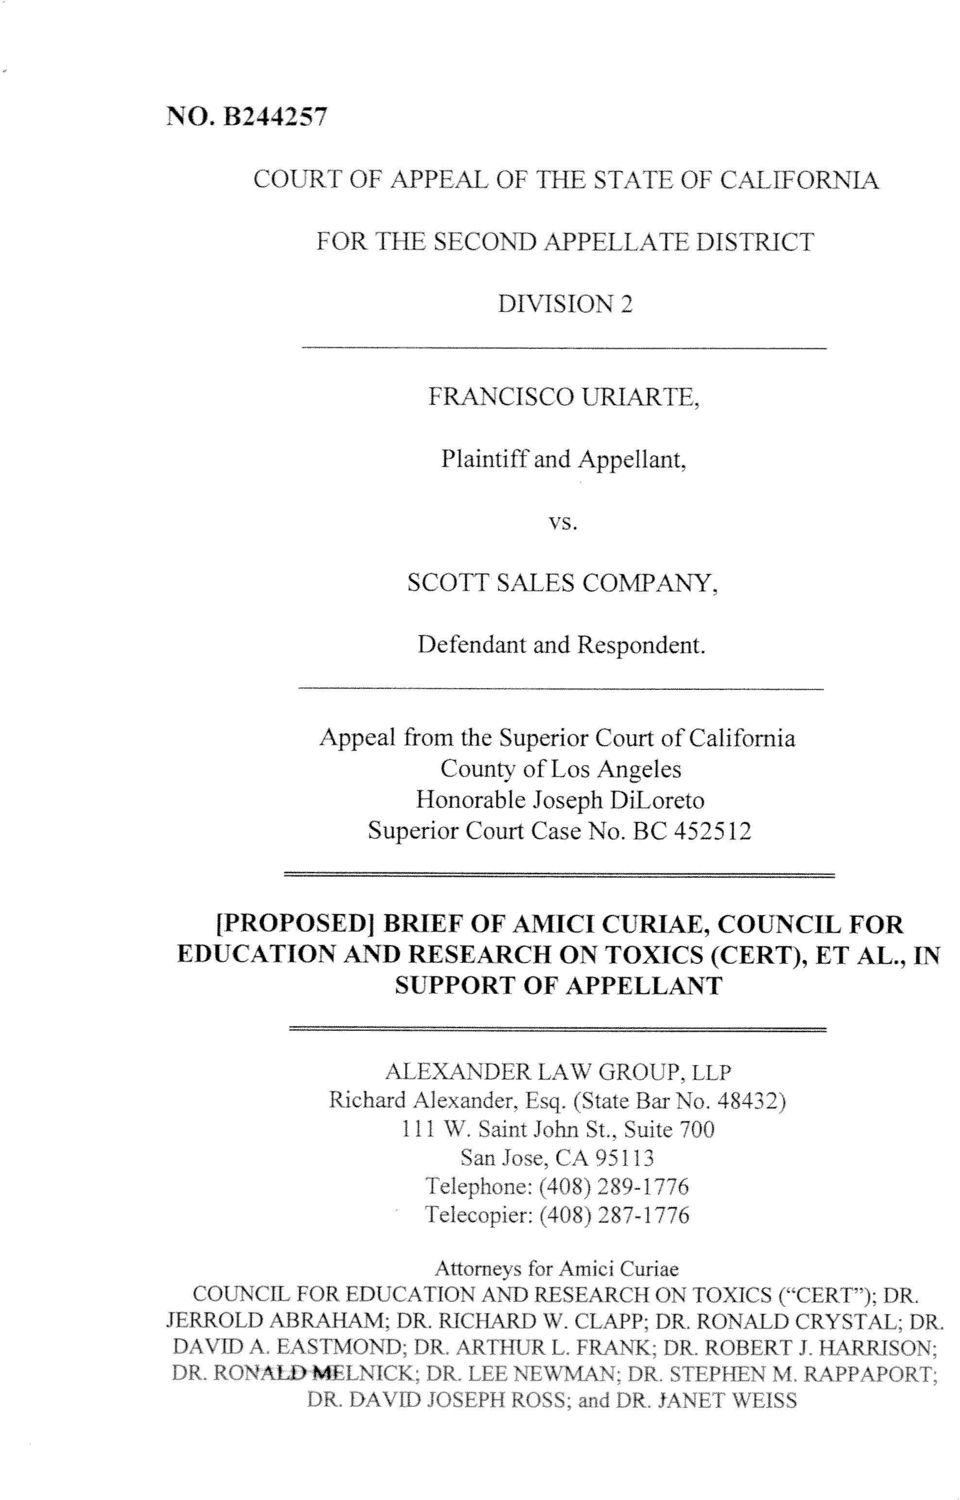 BC 452512 [PROPOSEDI BRIEF OF AMICI CURIAE, COUNCIL FOR EDUCATION AND RESEARCH ON TOXICS (CERT), ET AL., IN SUPPORT OF APPELLANT ALEXANDER LAW GROUP, LLP Richard Alexander. Esq.